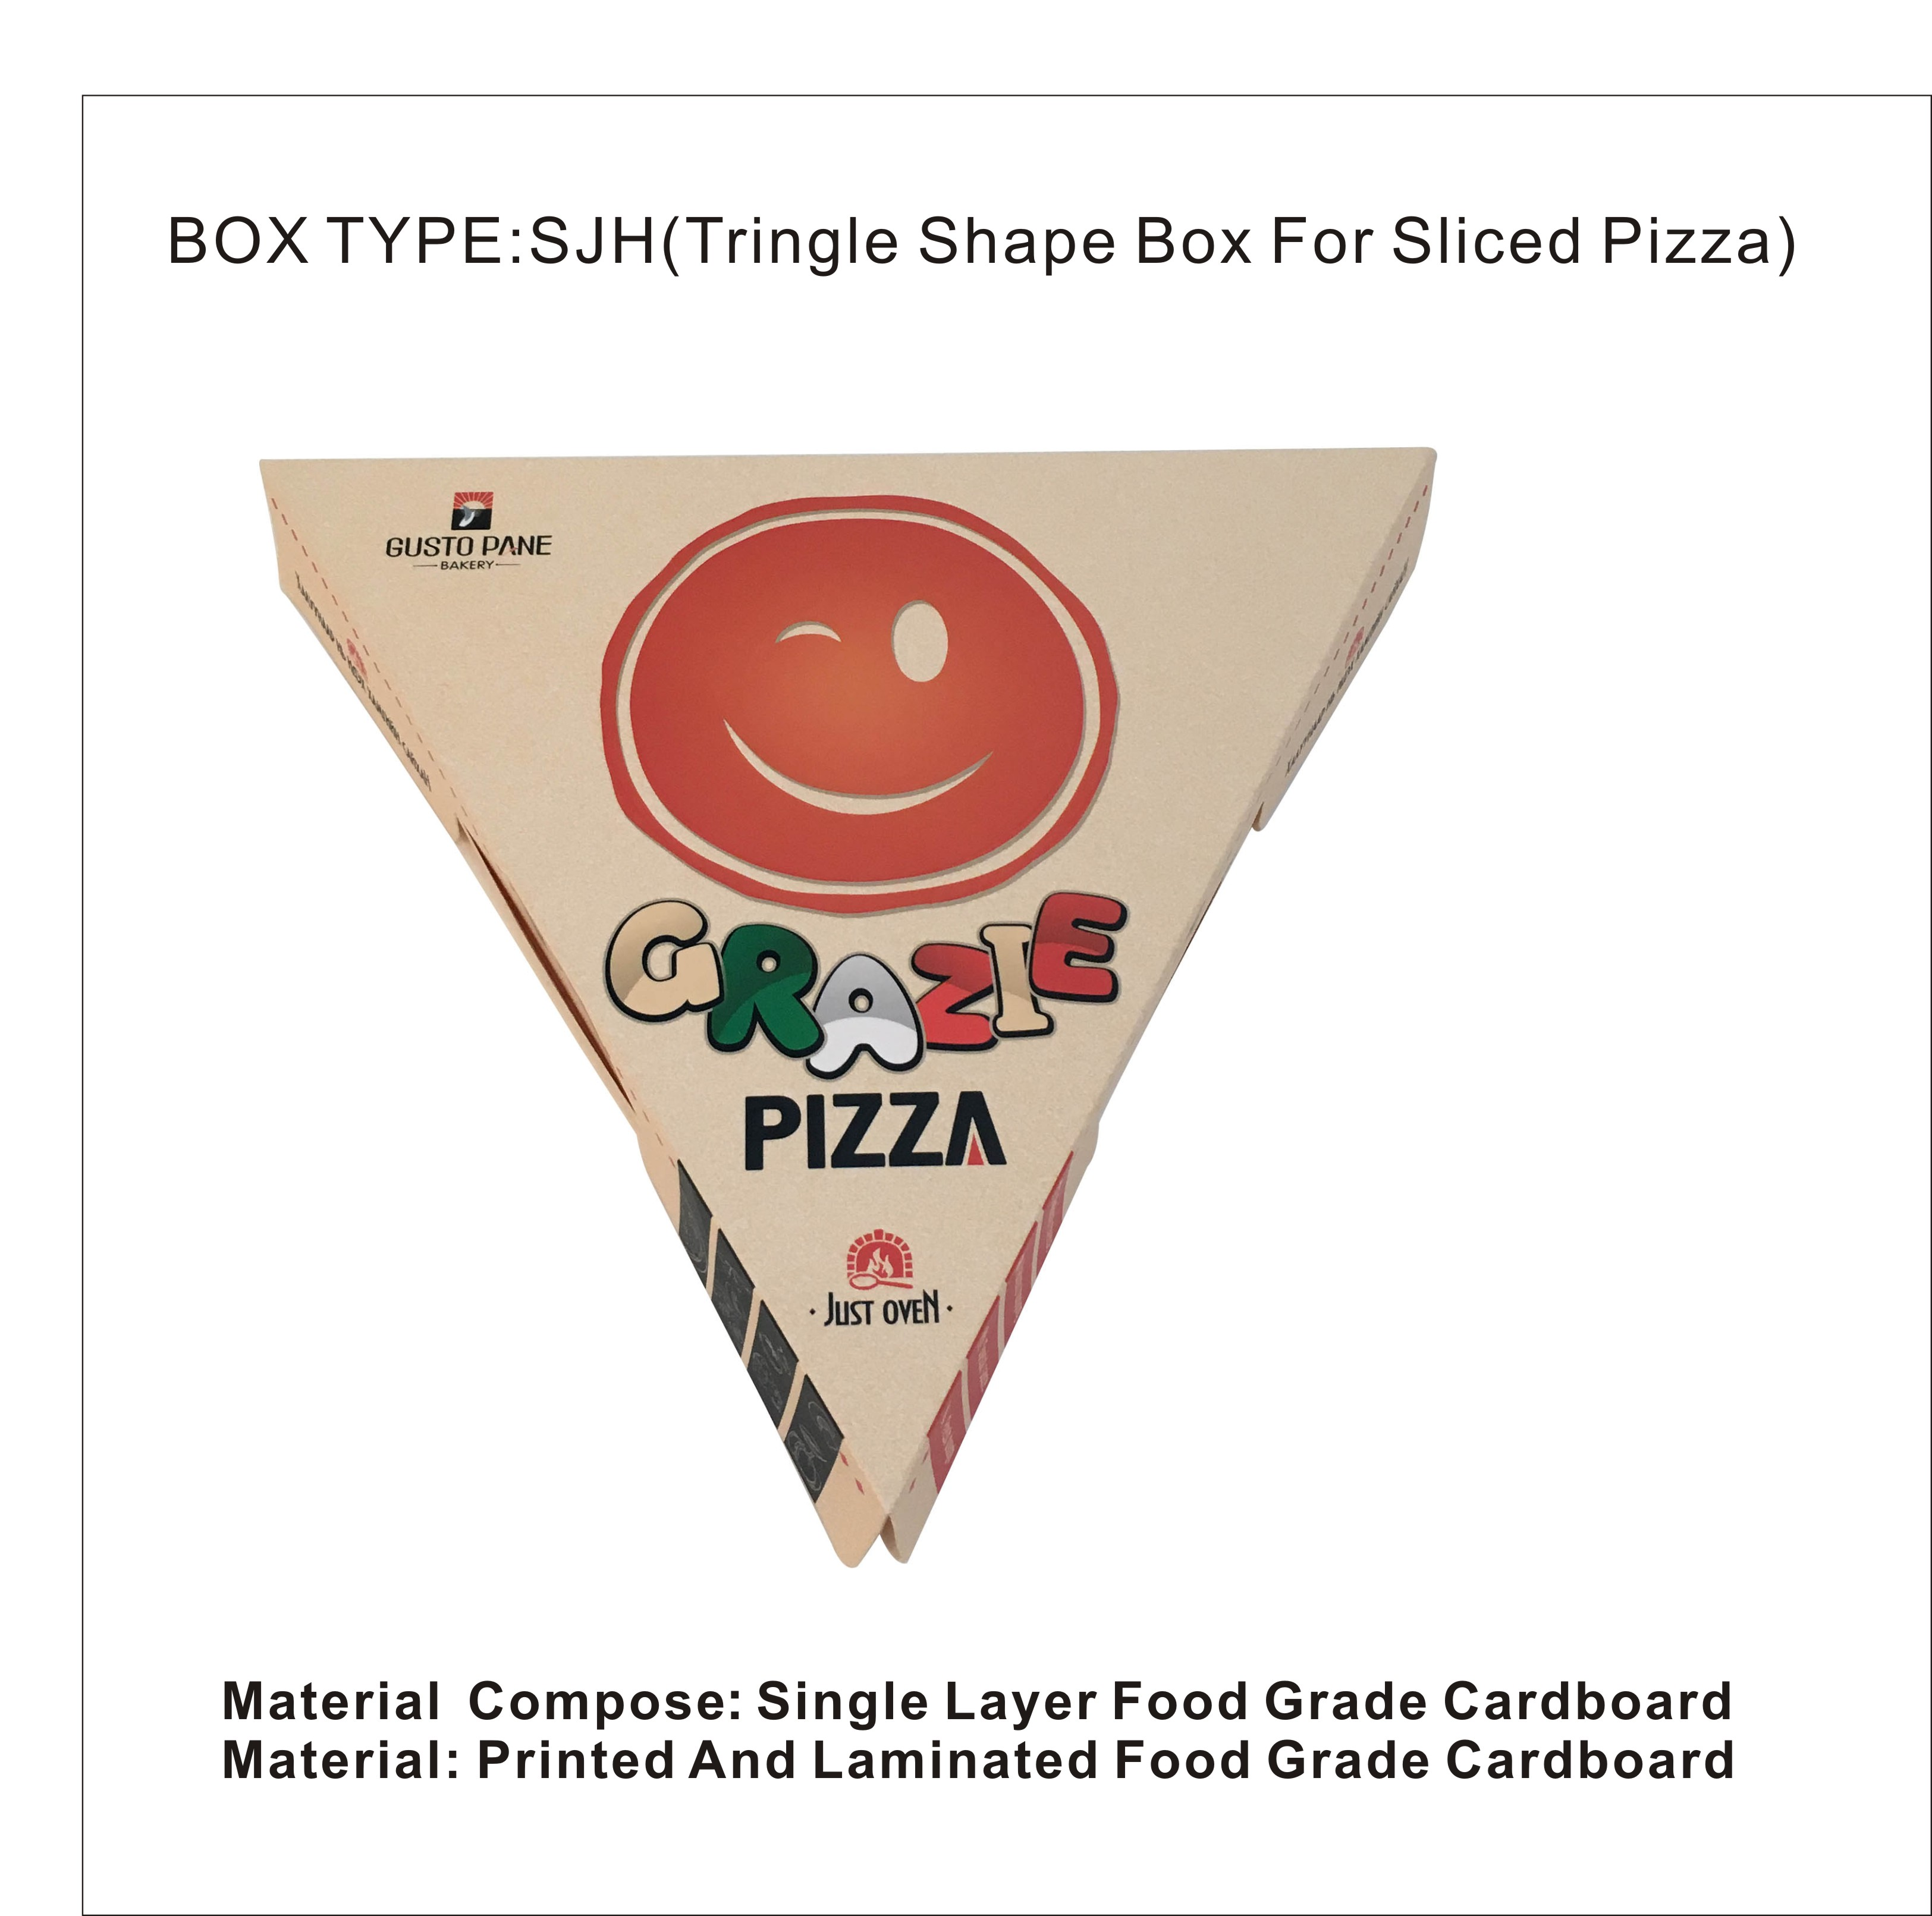 logo printing customize single layer food grade cardboard triangle shape pizza box for sliced pizza